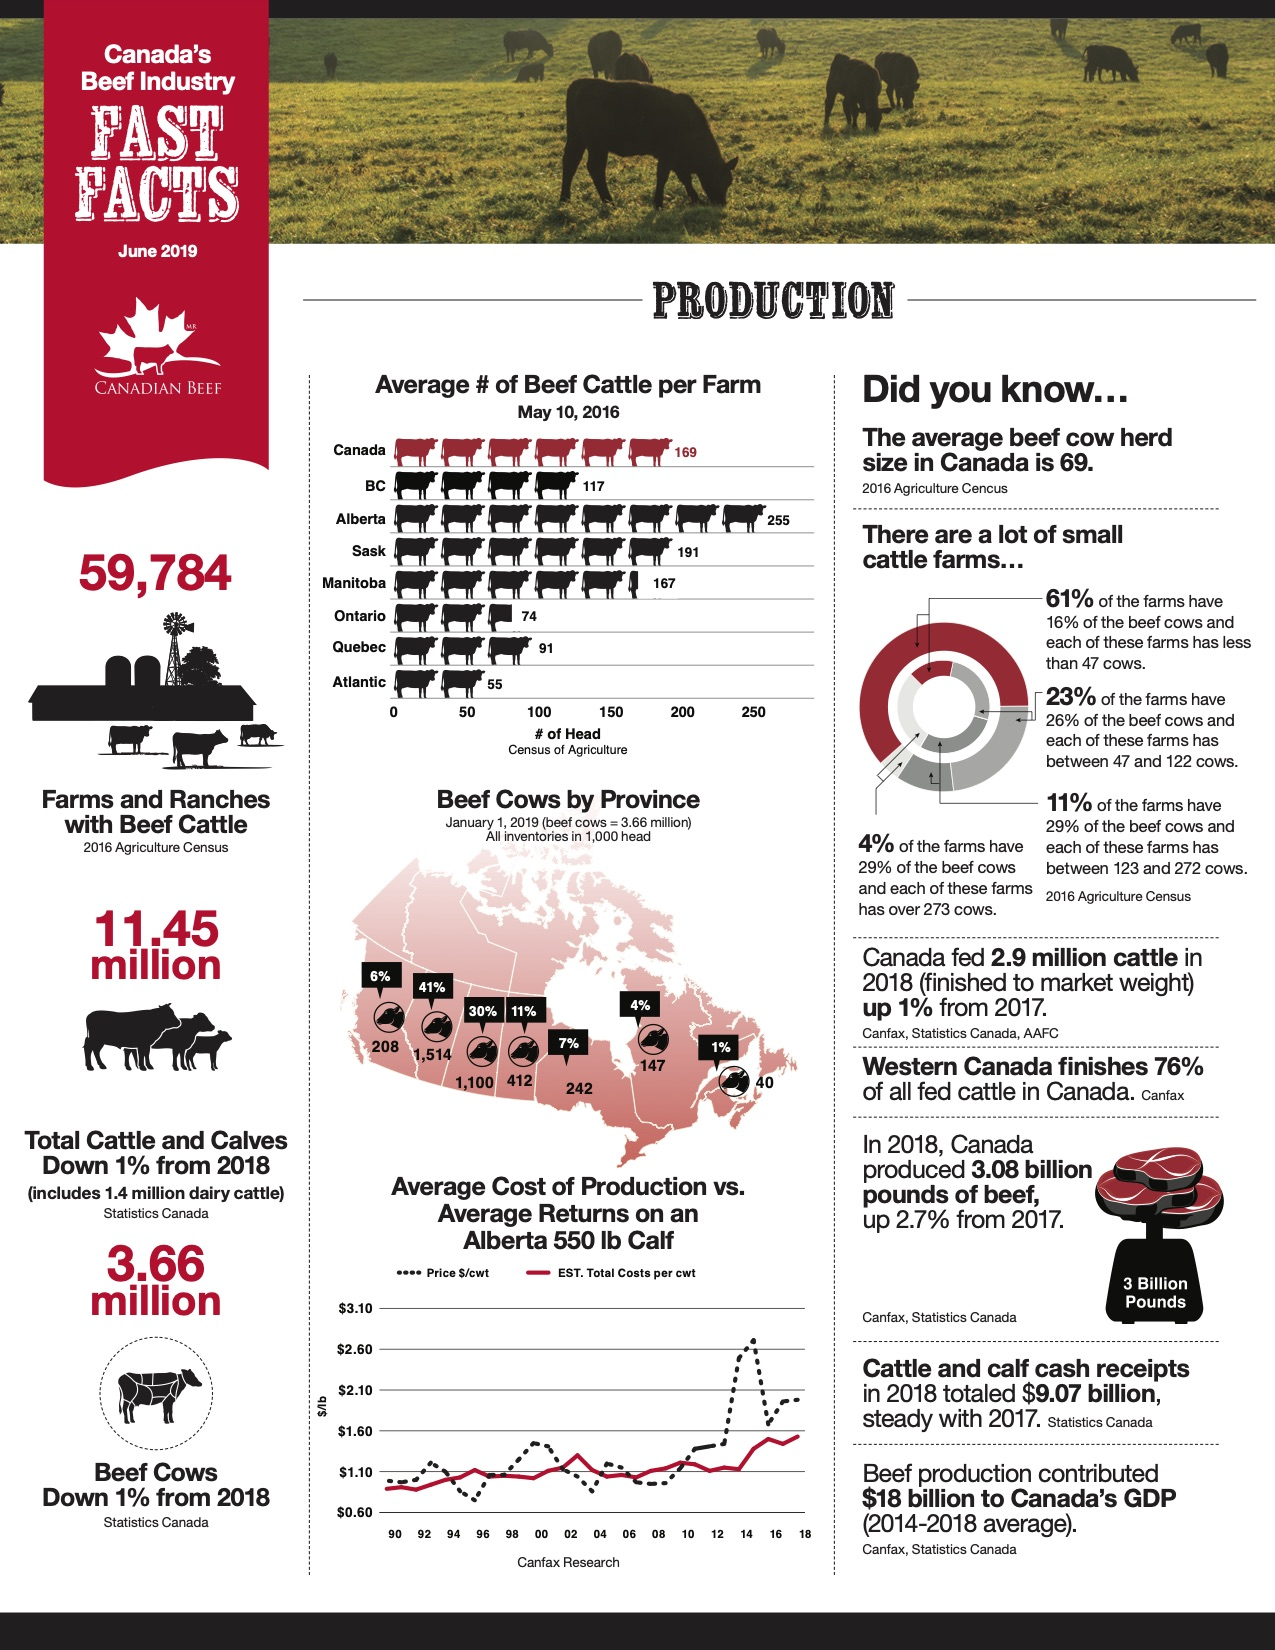 Canada's Beef Industry Fast Facts